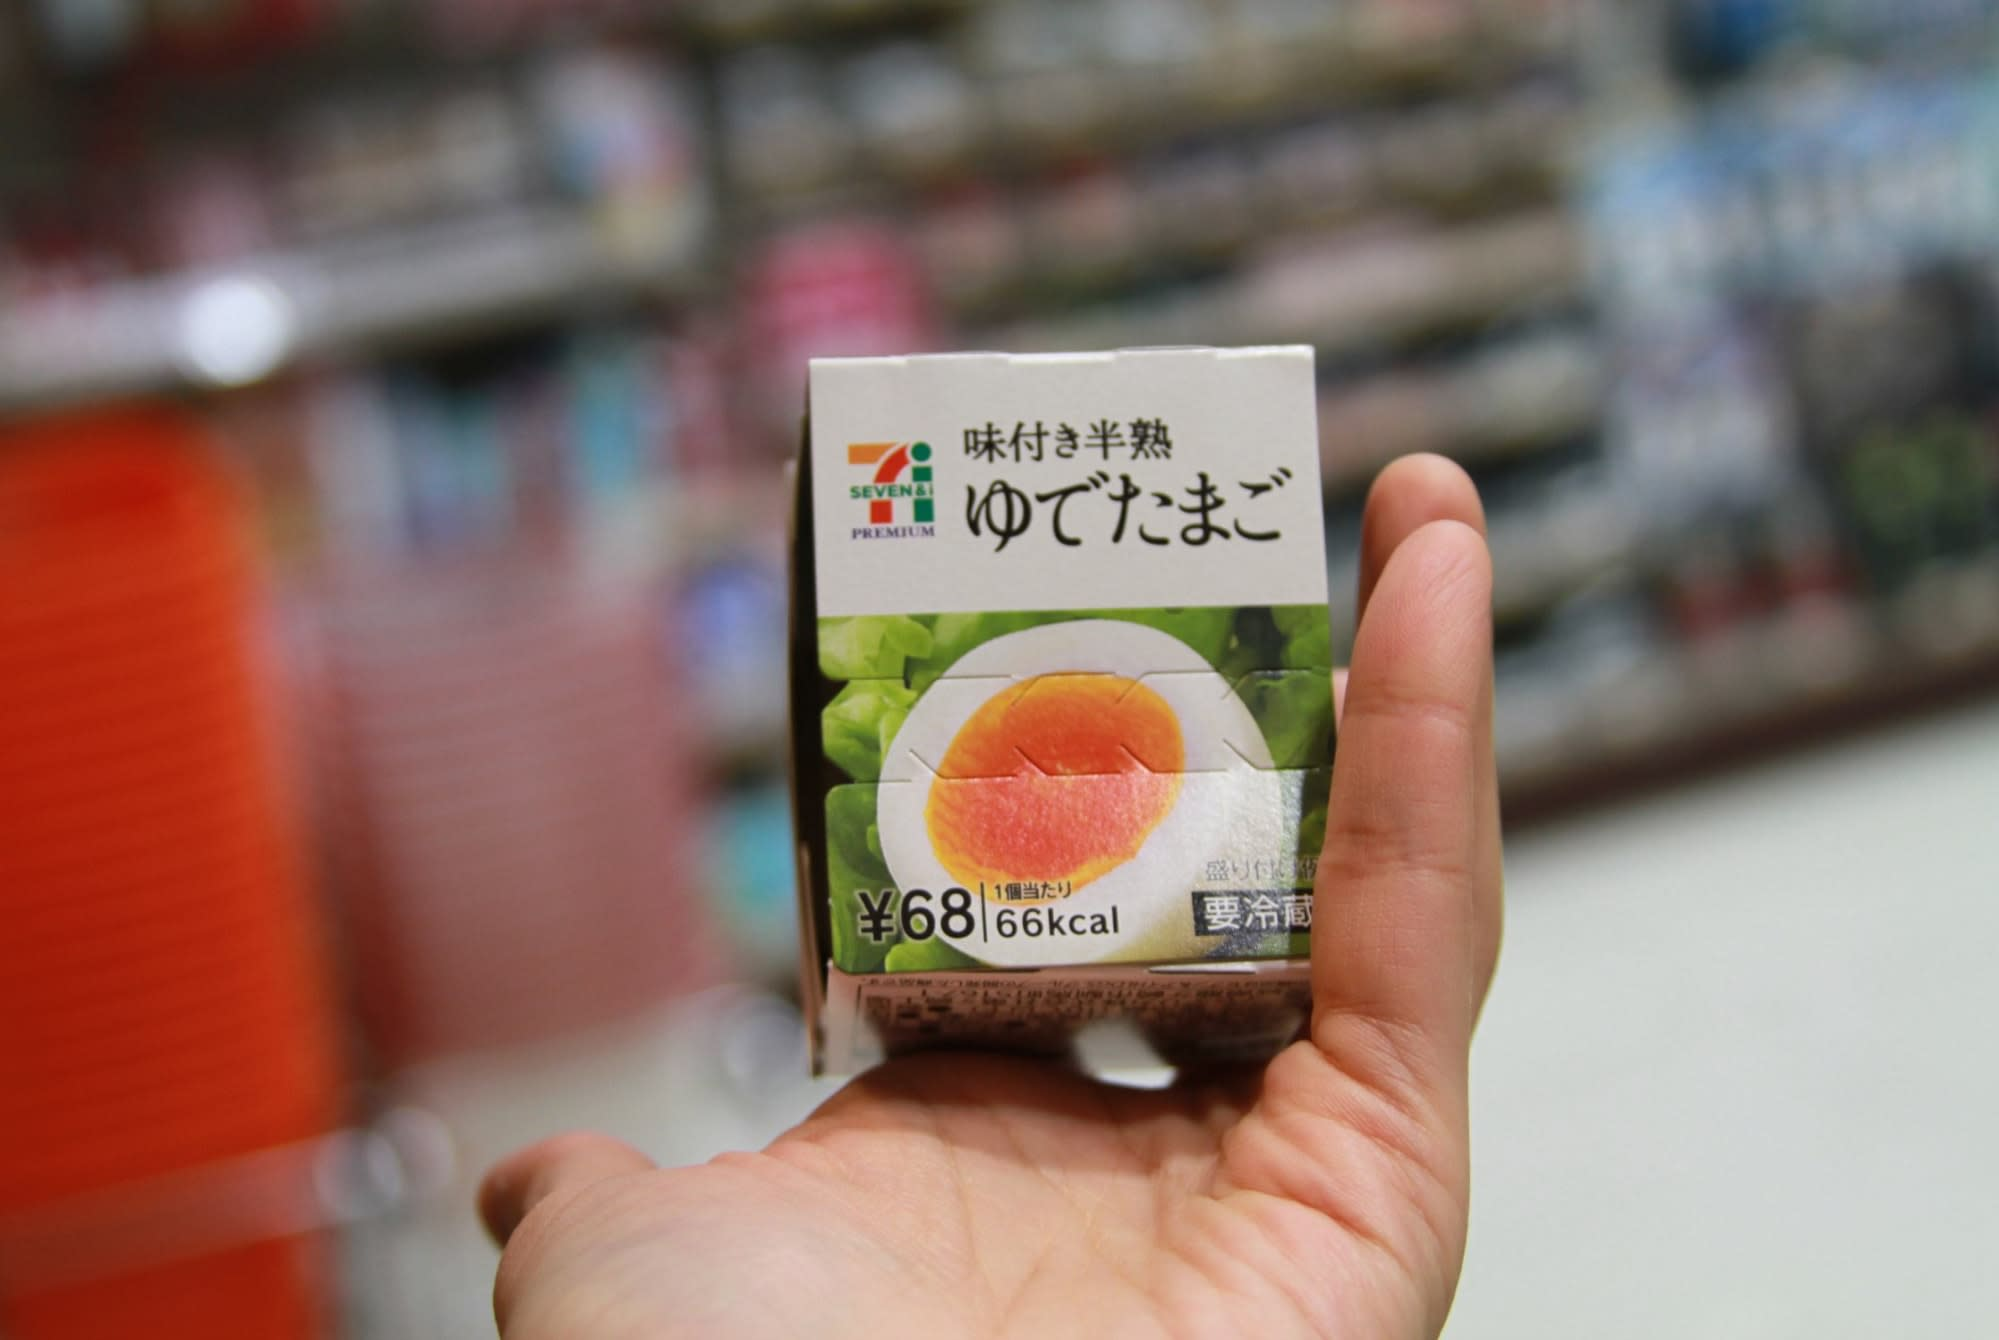 Ramen Egg or Half Boiled Egg from 7-Eleven Japan